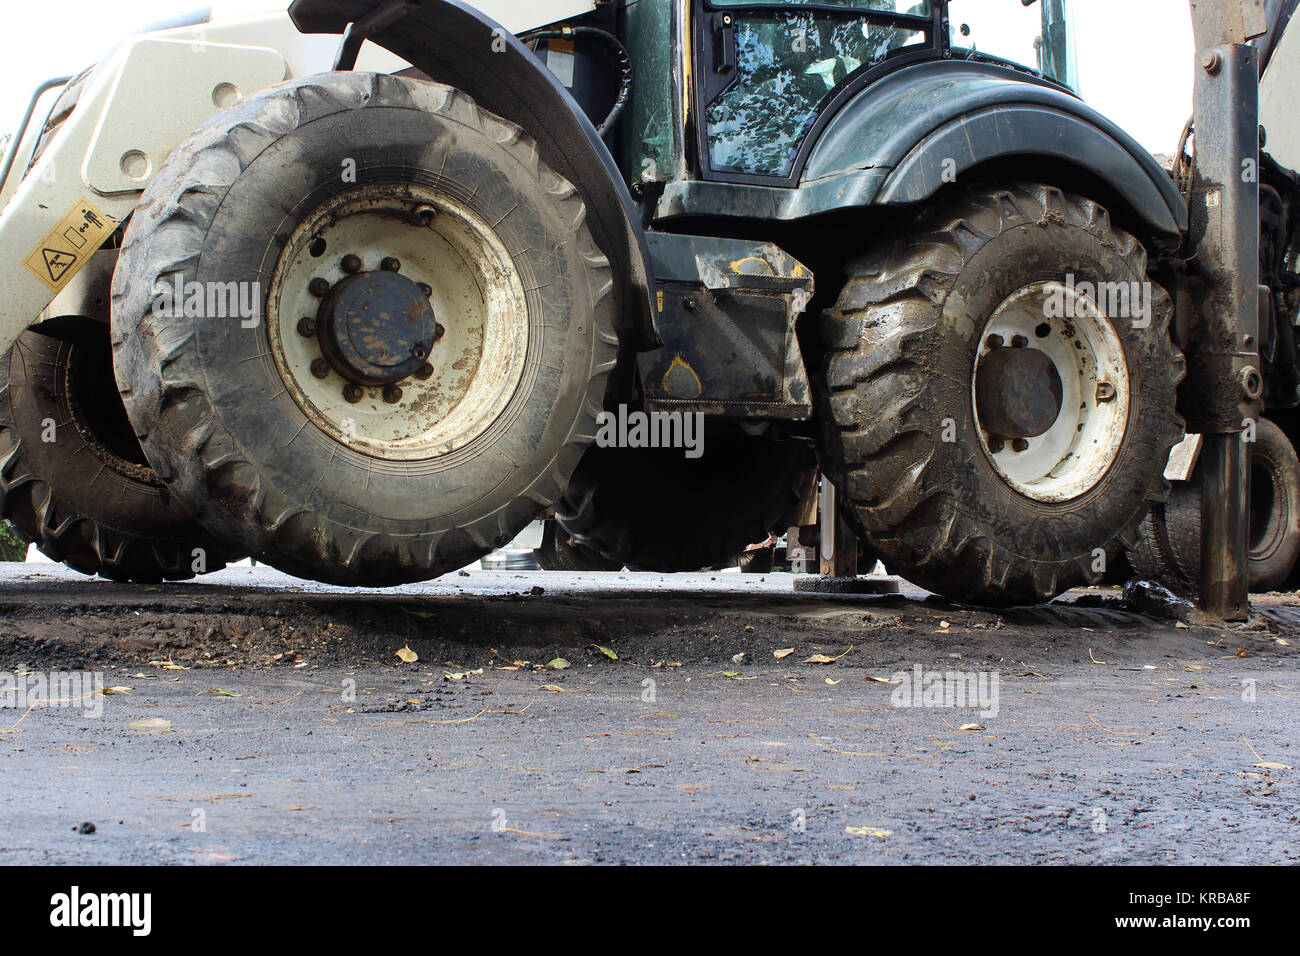 Truck strong outrigger stabilizing legs extended. Tractor on extended outriggers for better stability, digging a - Stock Image